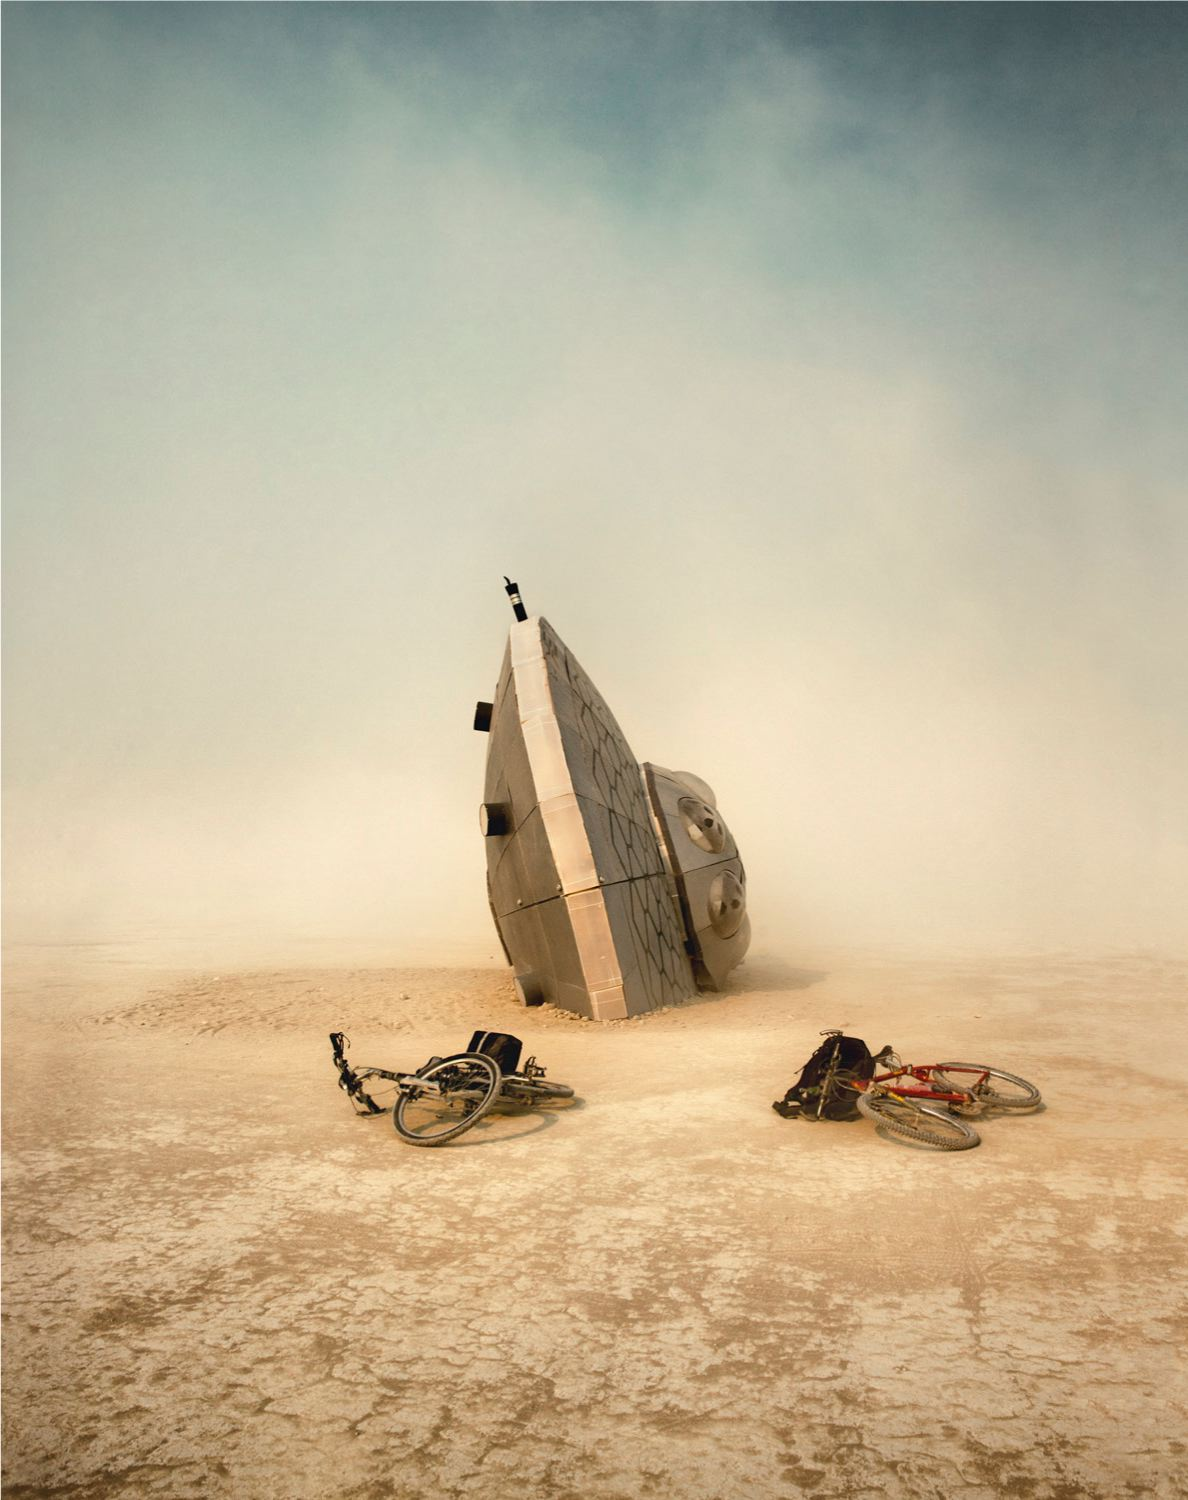 Anders Overgaard   Crash Site Alpha 13 , 2017  Framed size:  59 1/2 x 48 1/2 inches  151.1 x 123.2 cm  Edition of 3